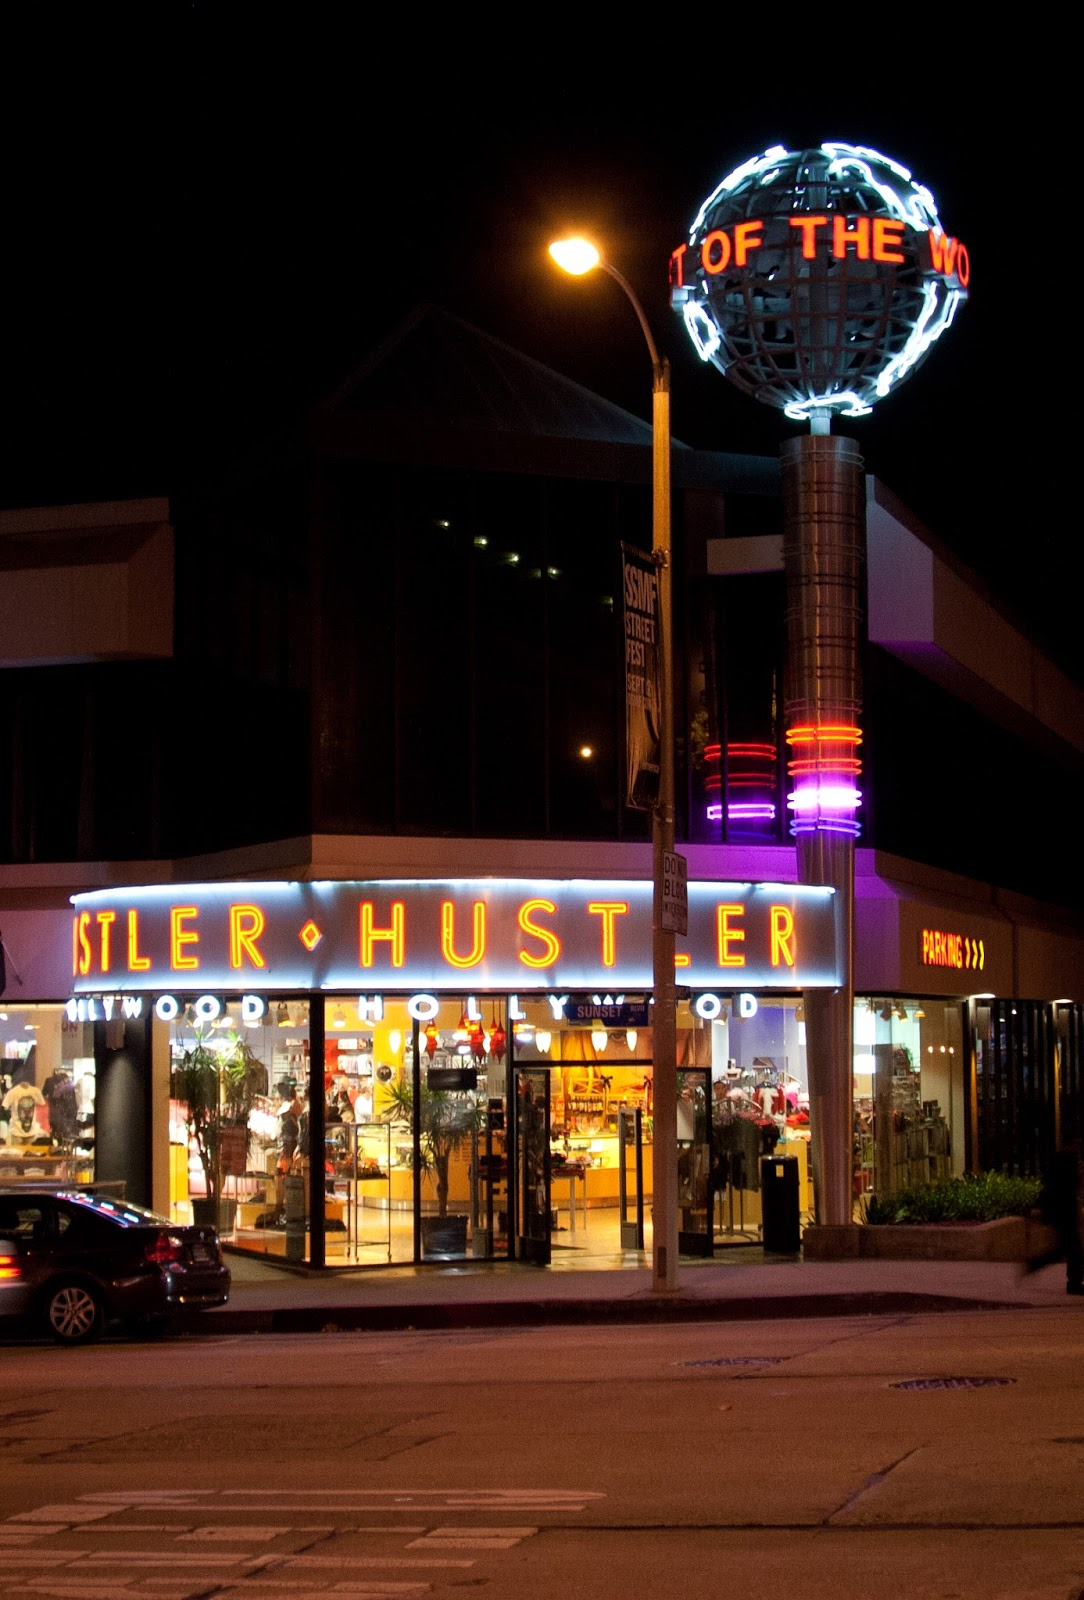 Are certainly hustler of hollywood store inlexington